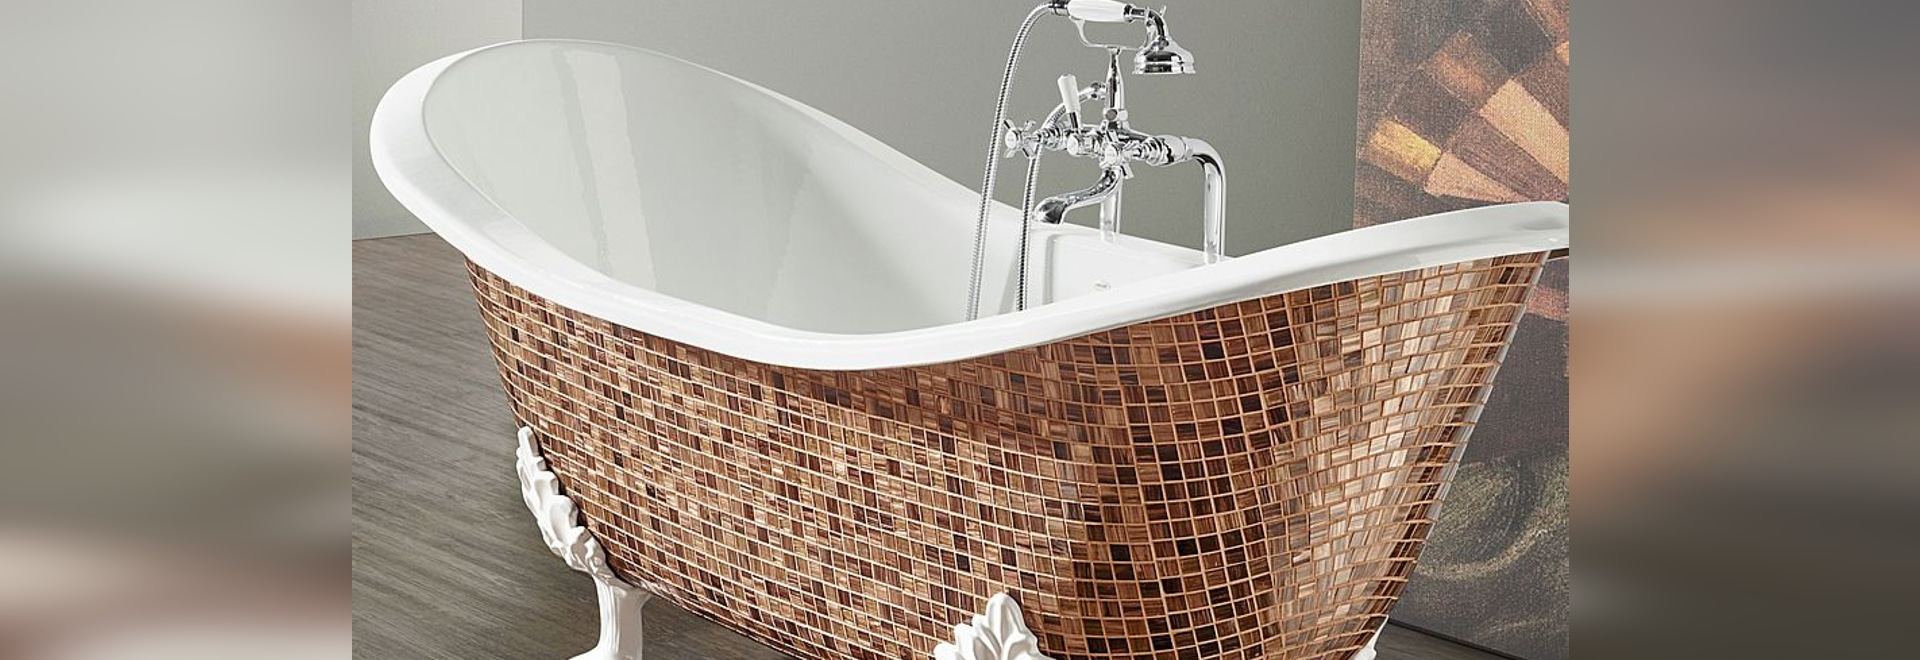 http://img.archiexpo.it/images_ae/projects/images-og/vasca-ghisa-mosaico-date-tocco-charme-vostro-bagno-15658-9885529.jpg